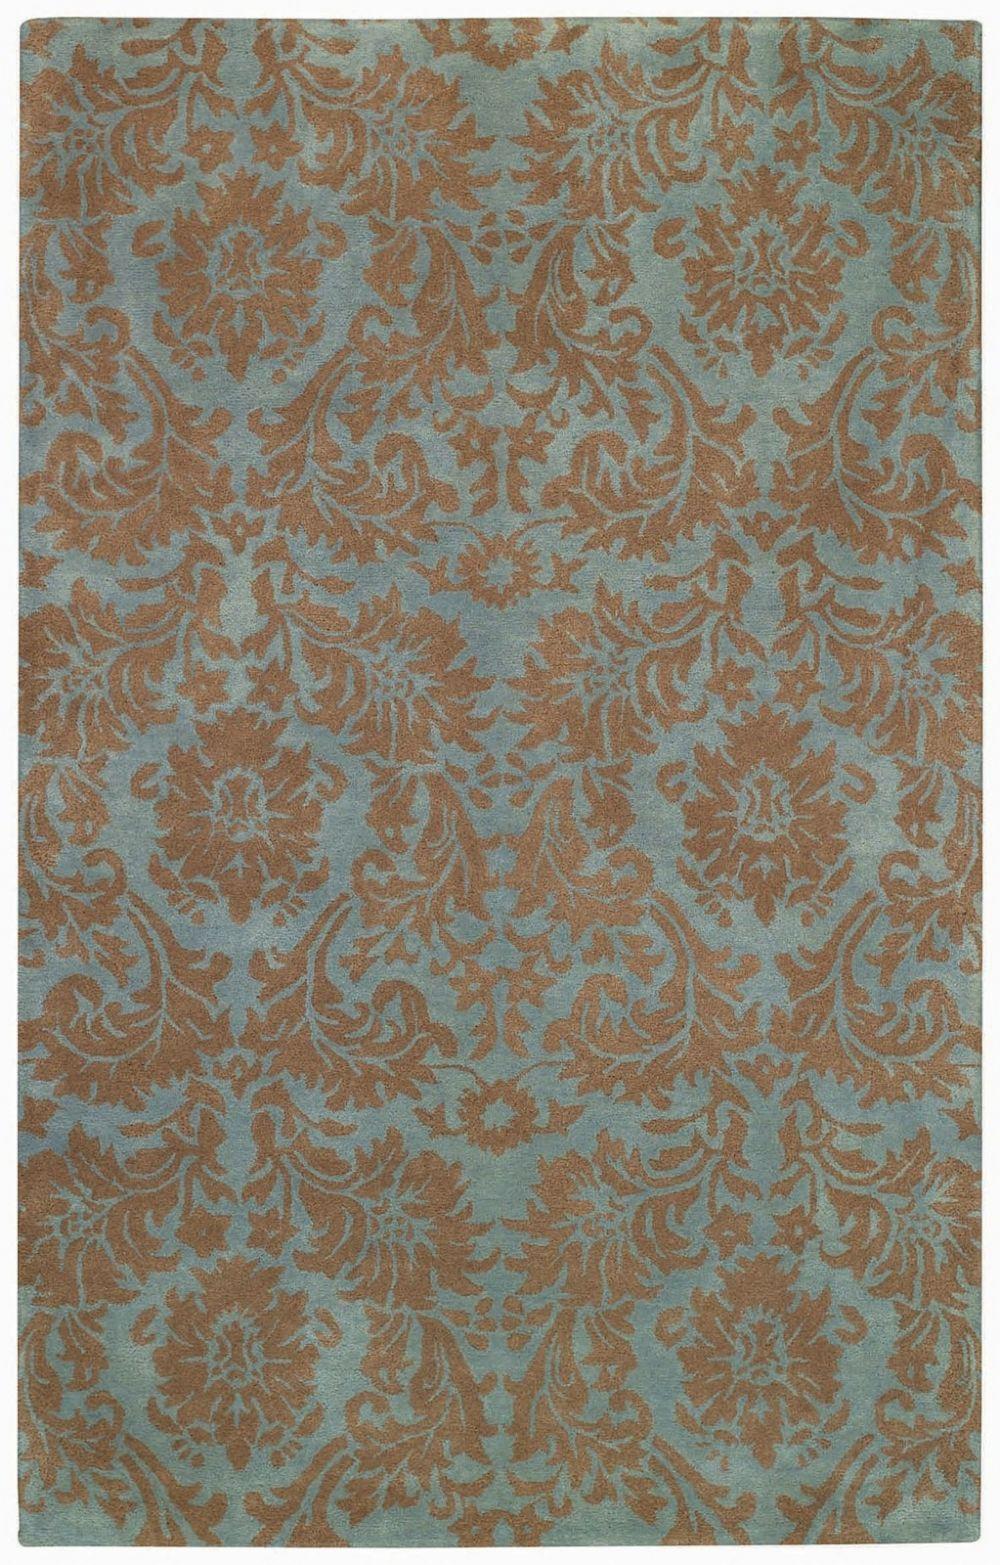 capel piedmont-floral damask transitional area rug collection